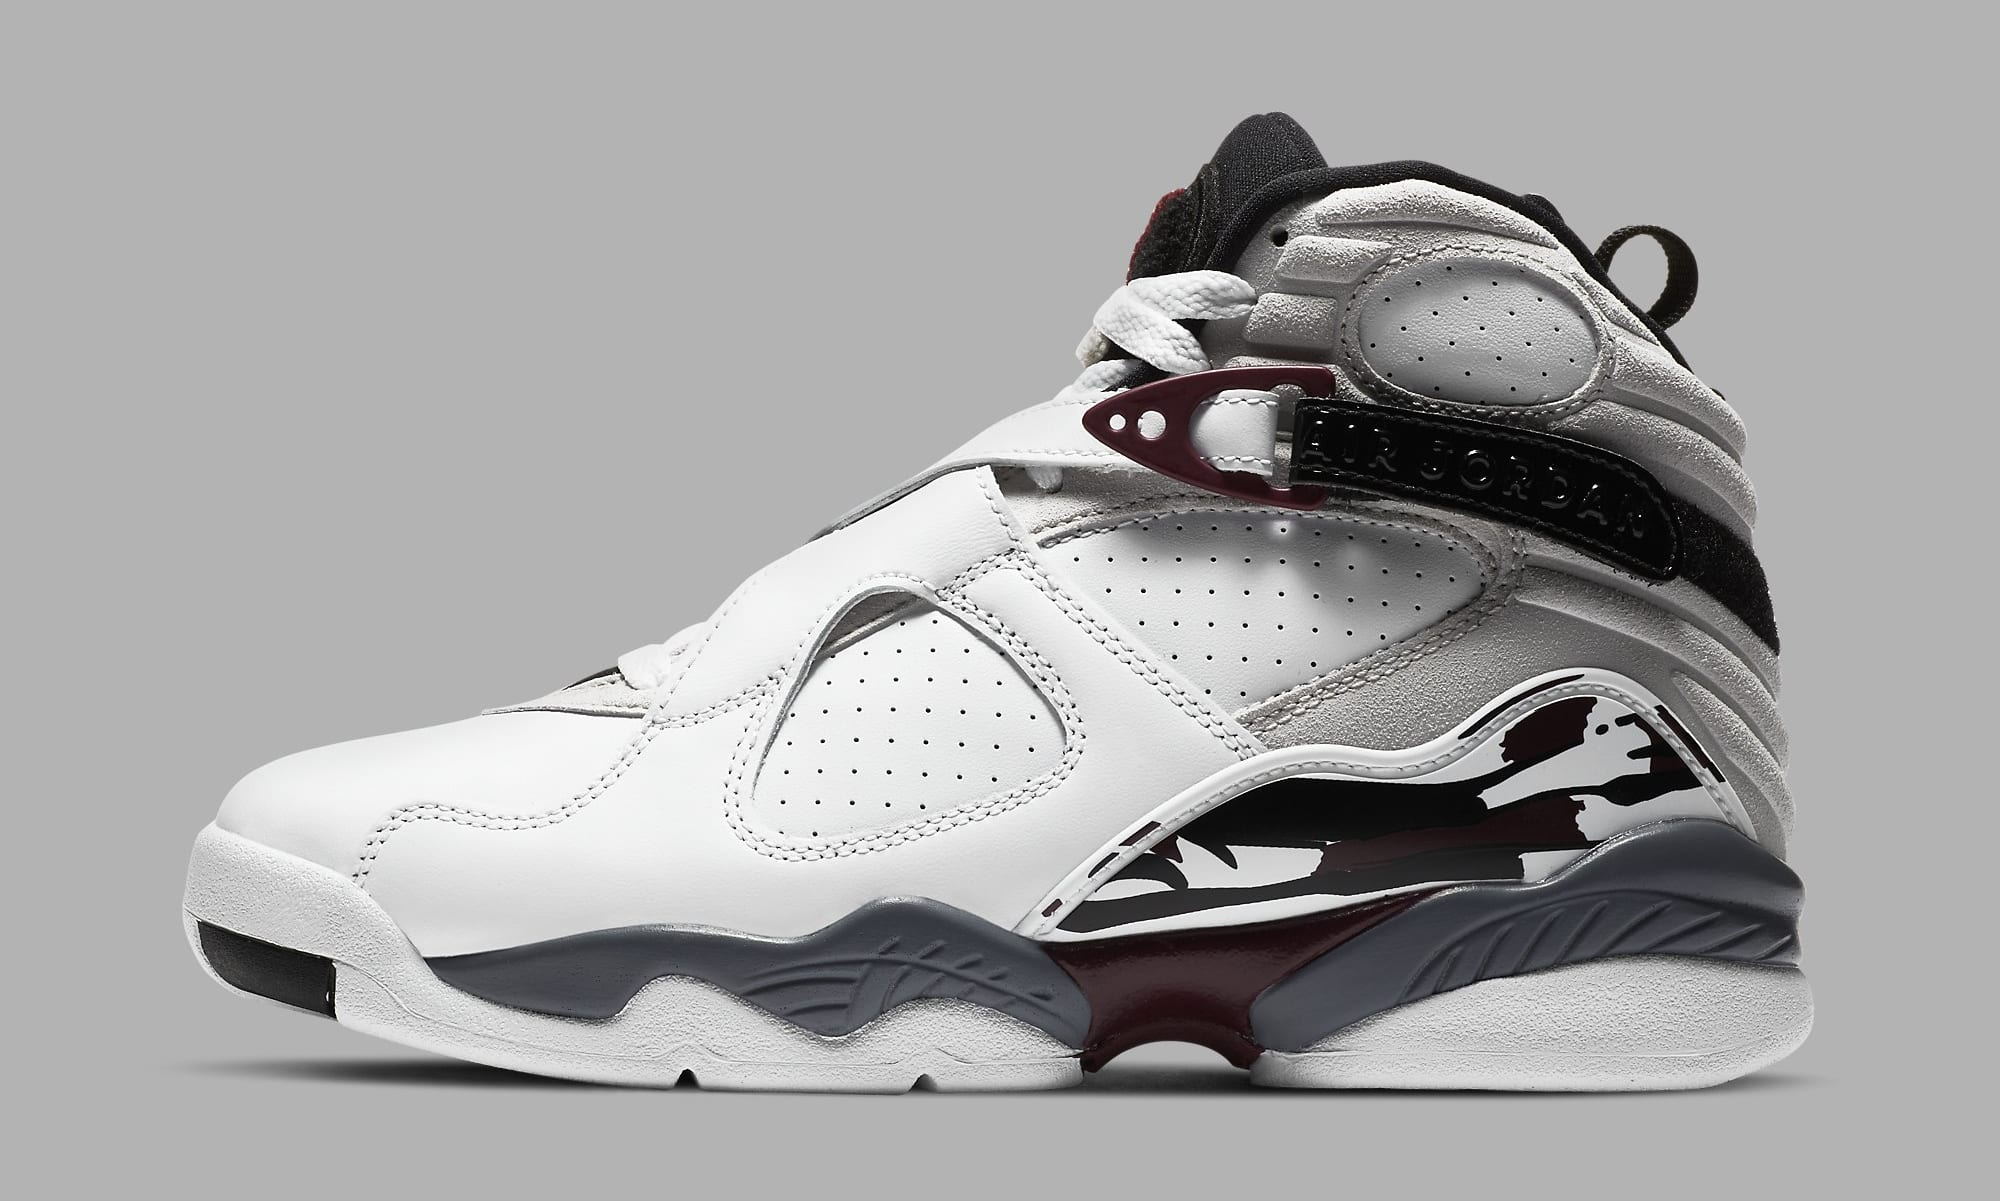 Air Jordan 8 Retro Women's 'Burgundy' CI1236-104 Lateral